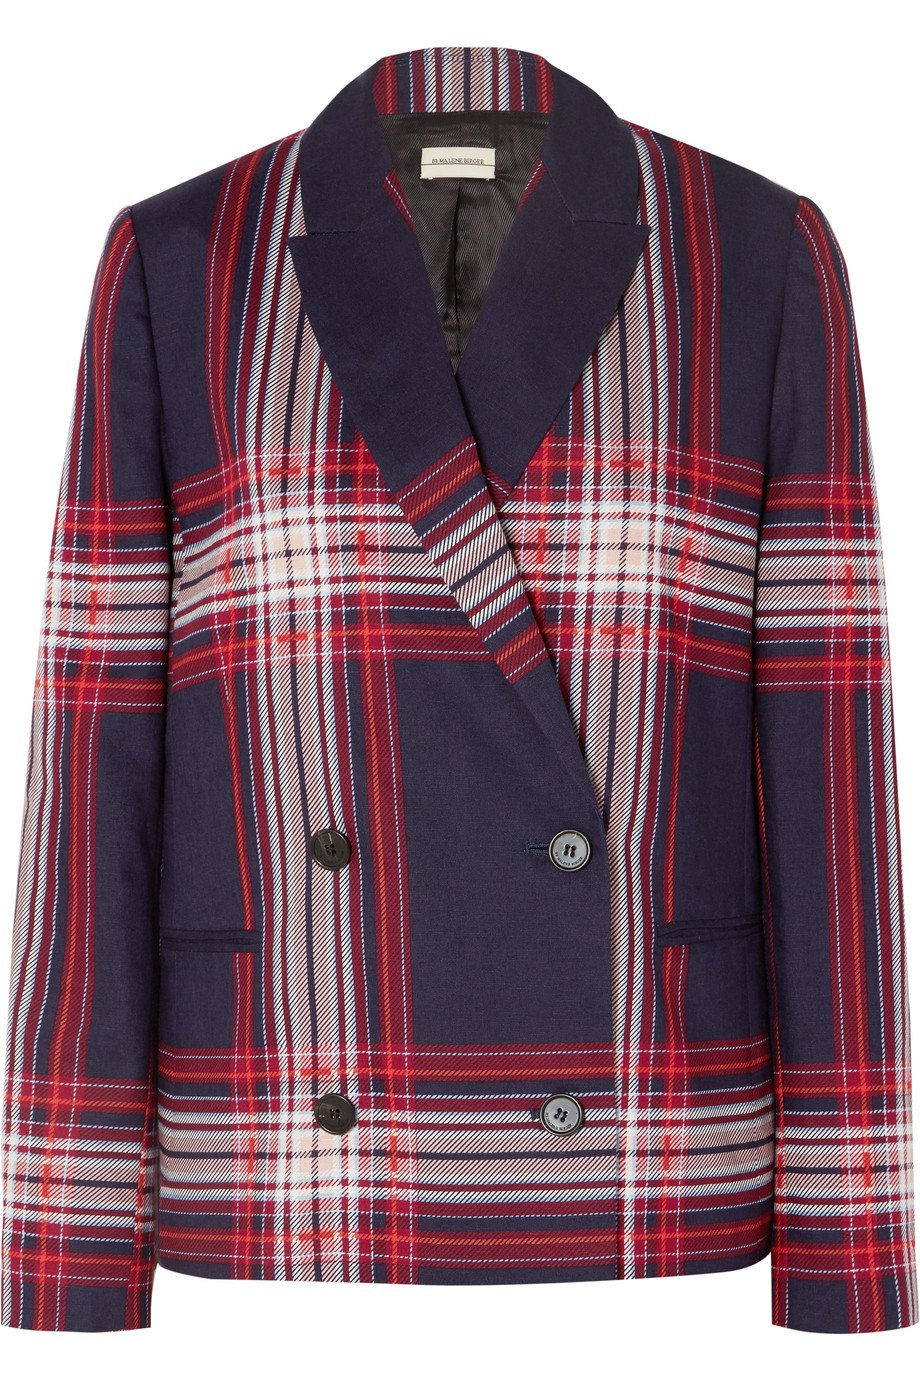 By Malene Birger | Rivali double-breasted checked linen and cotton-blend blazer | NET-A-PORTER.COM